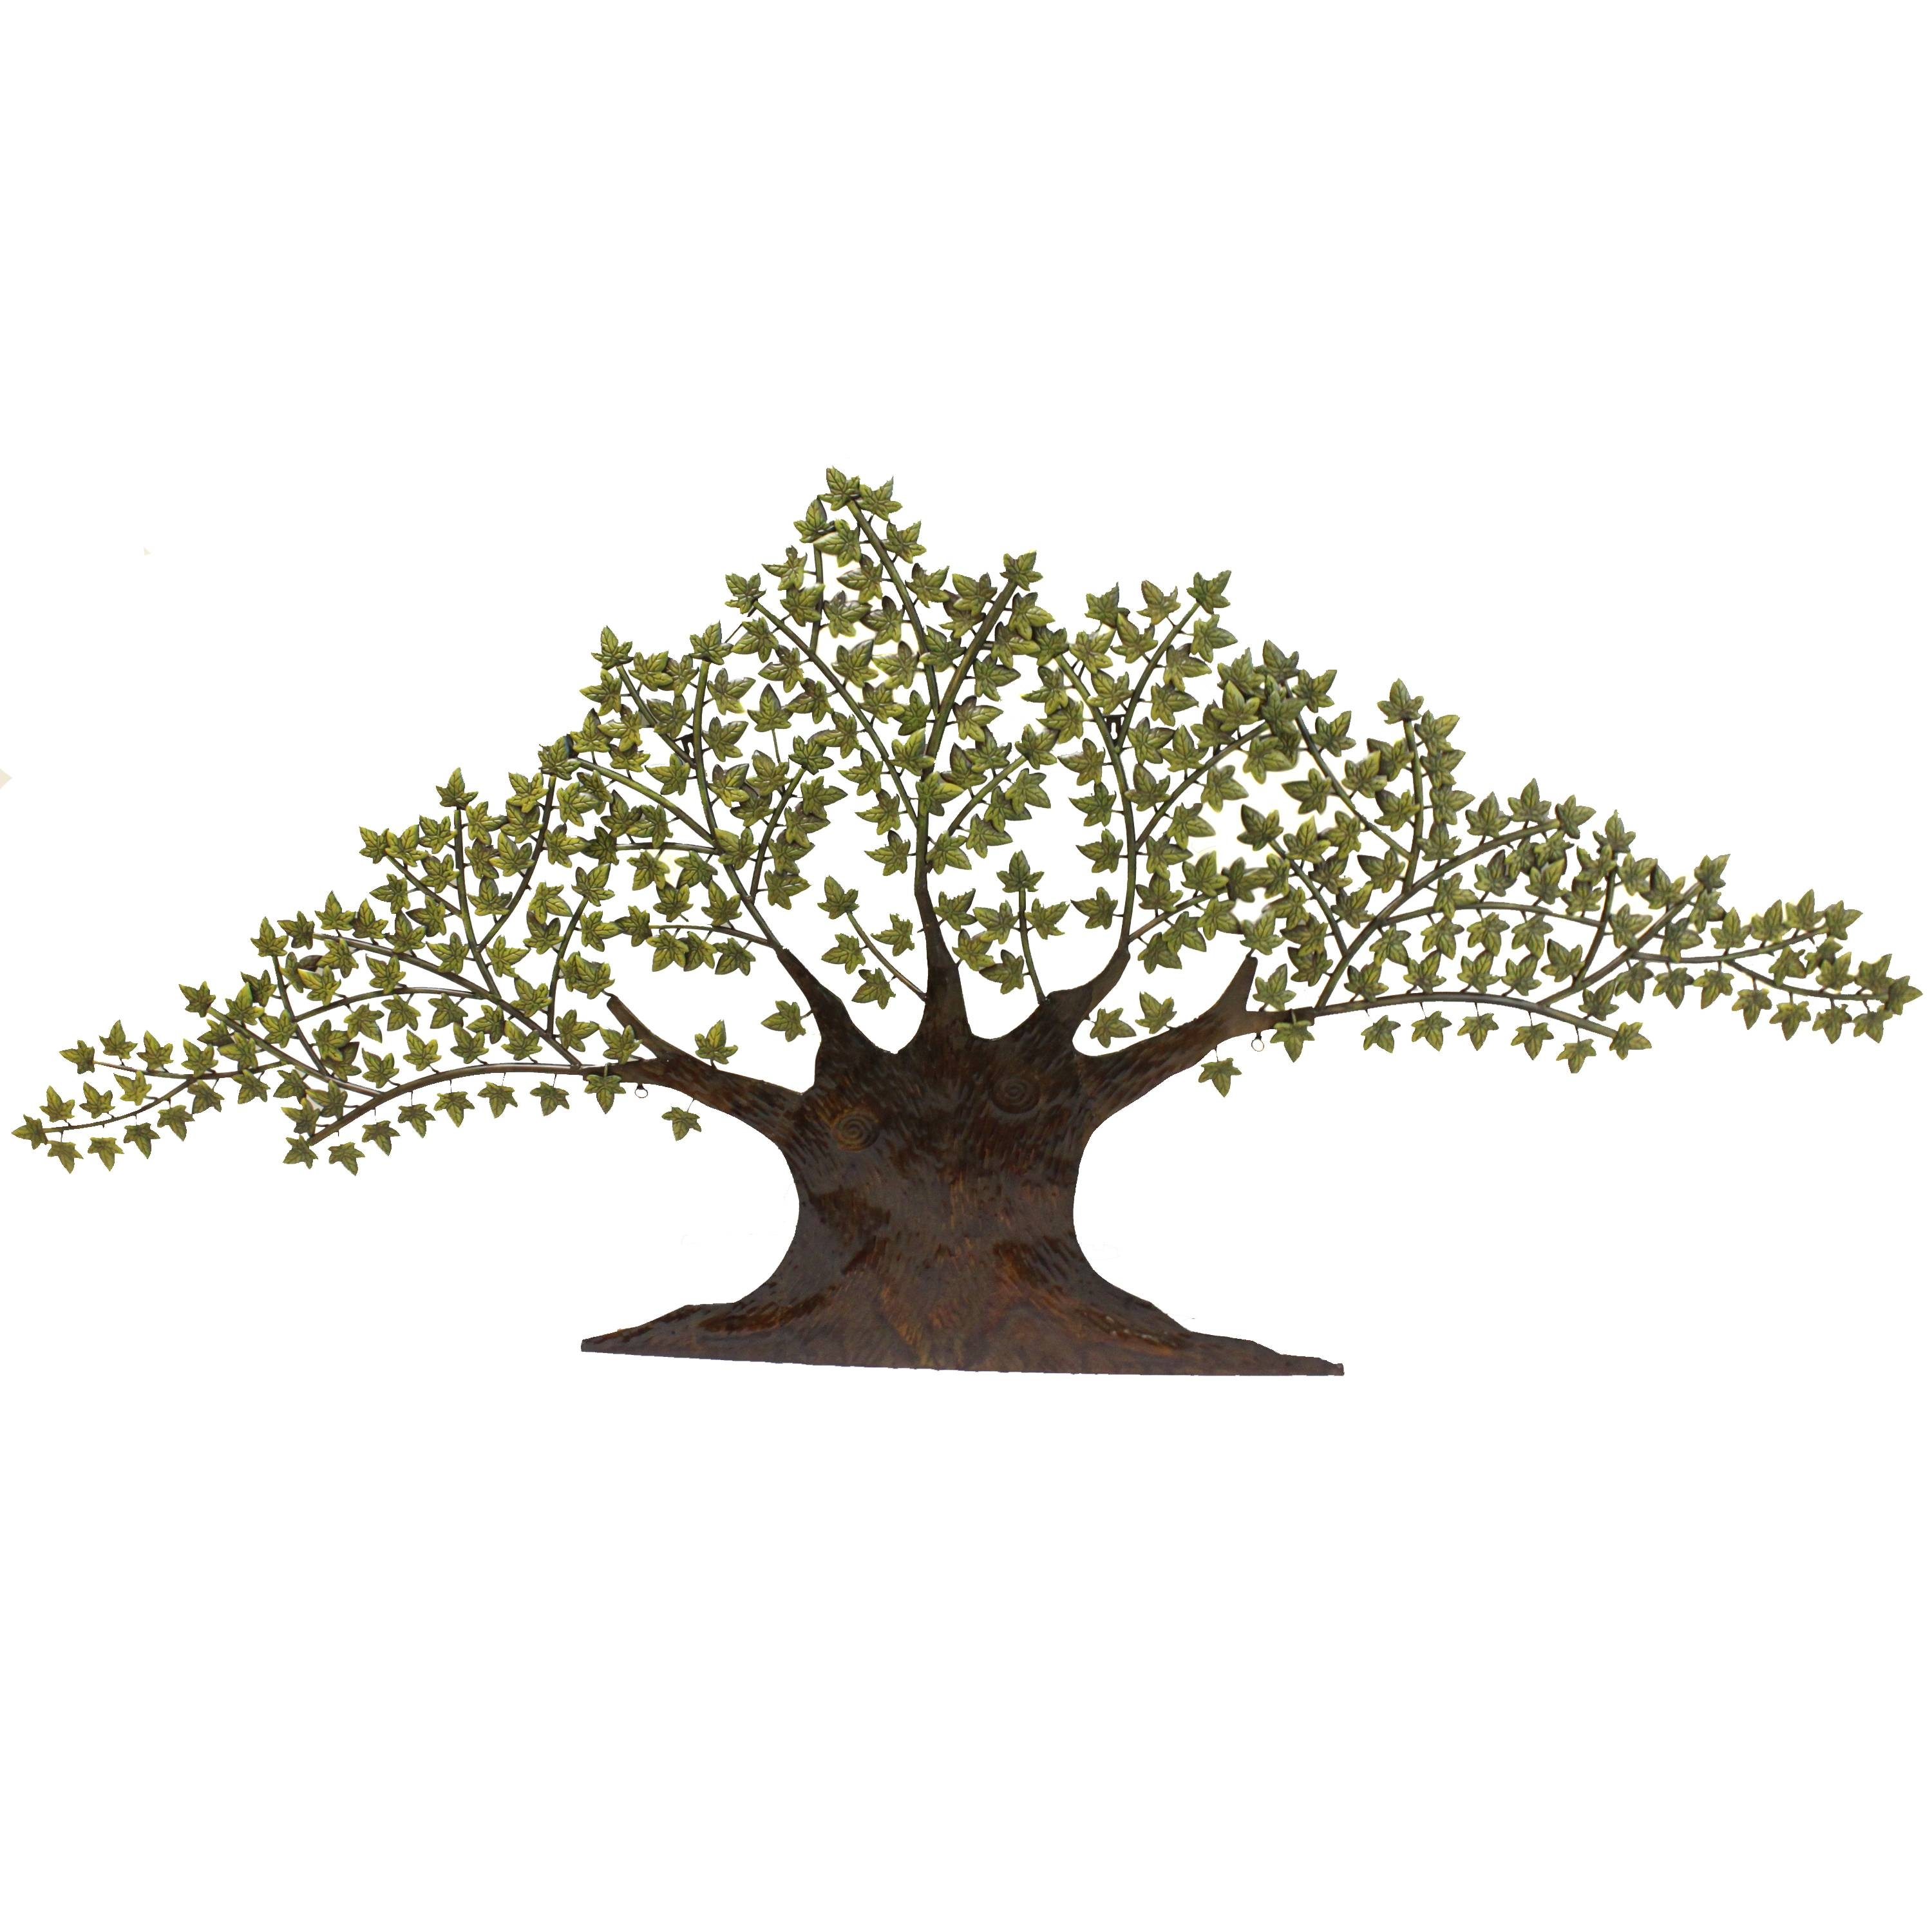 Grotesque Tree Of Life Metal Wall Art Decor Sculpture With Green Pertaining To Current Green Metal Wall Art (Gallery 19 of 20)